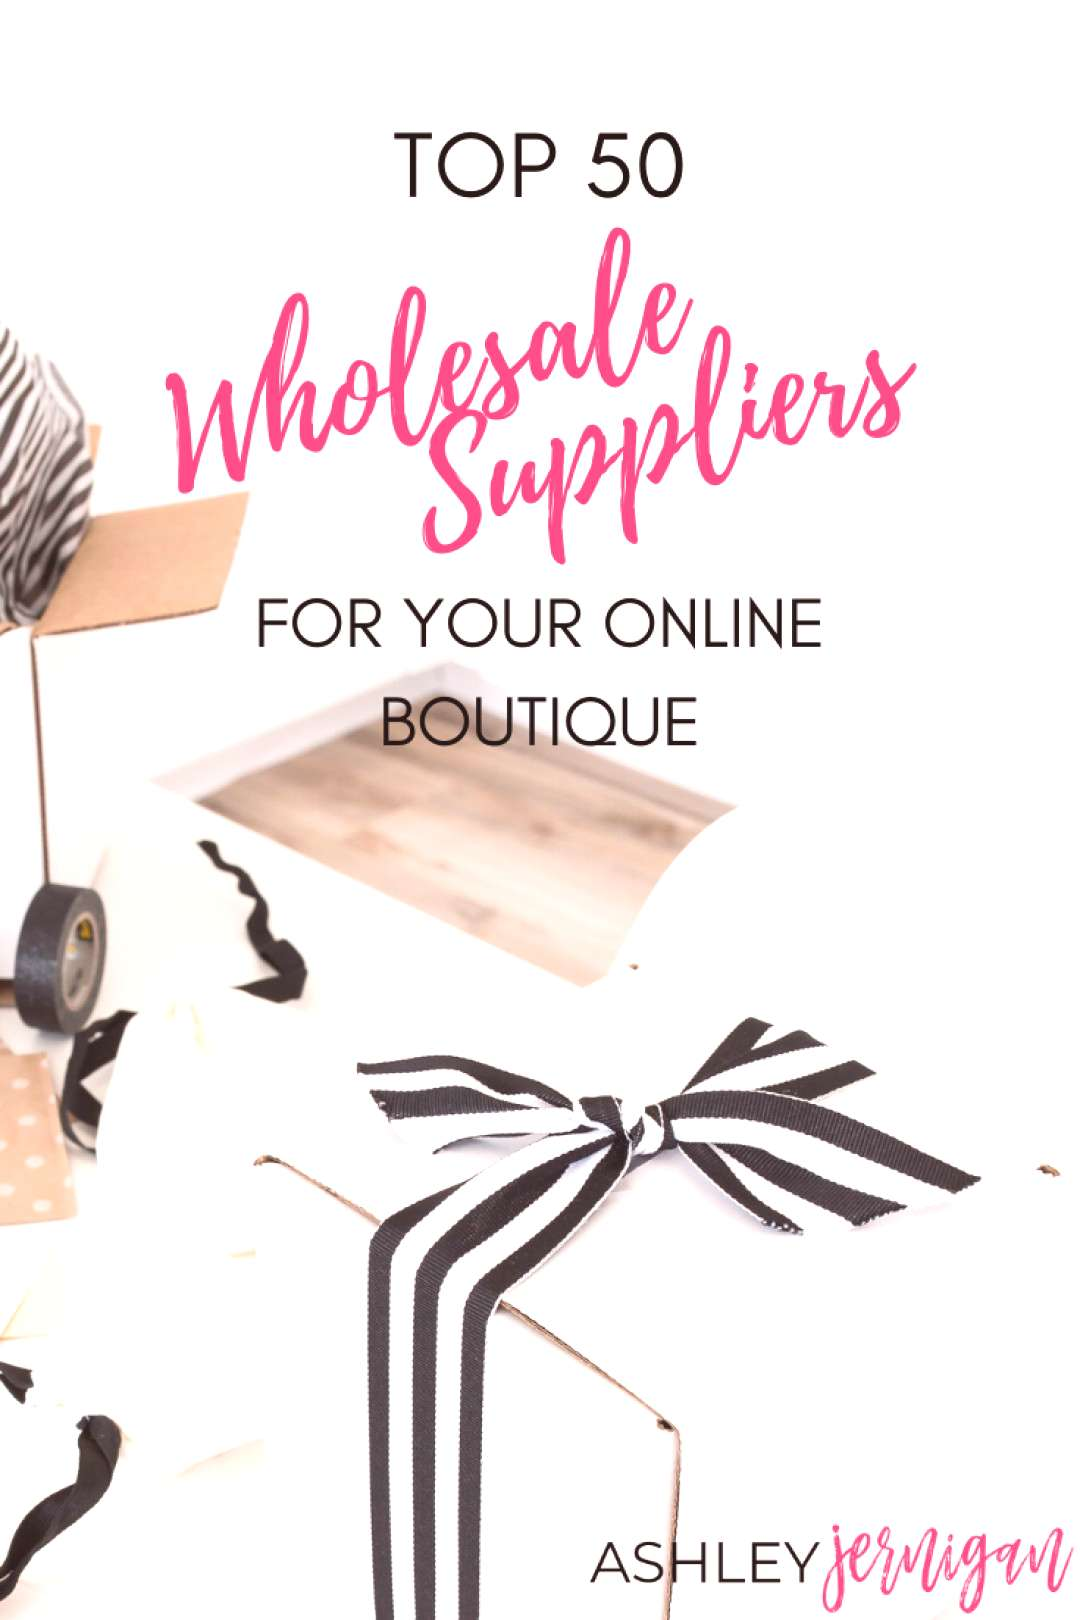 So you want to start your own online boutique? Online shopping continues to grow, and there has nev